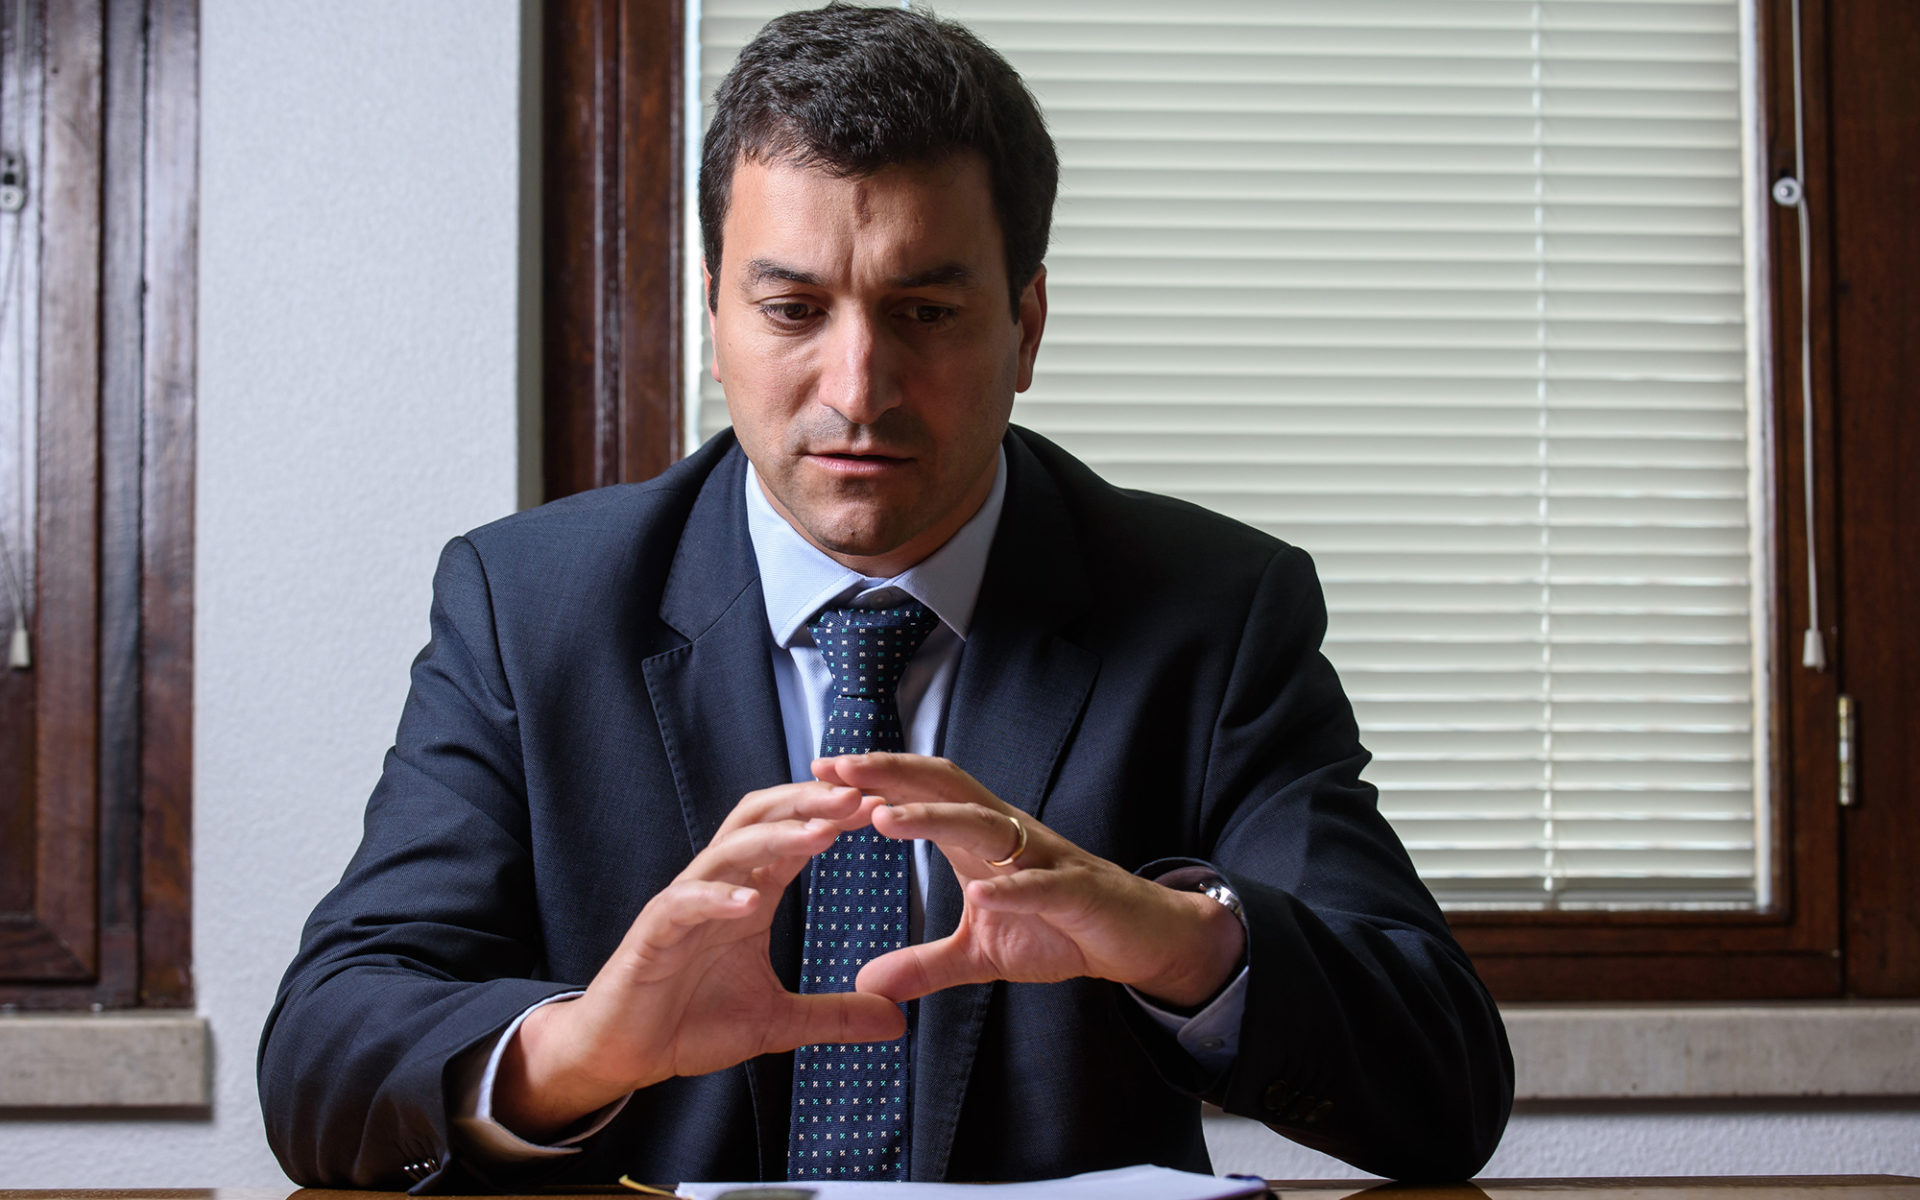 Miguel Silveira, director of Altriflorestal